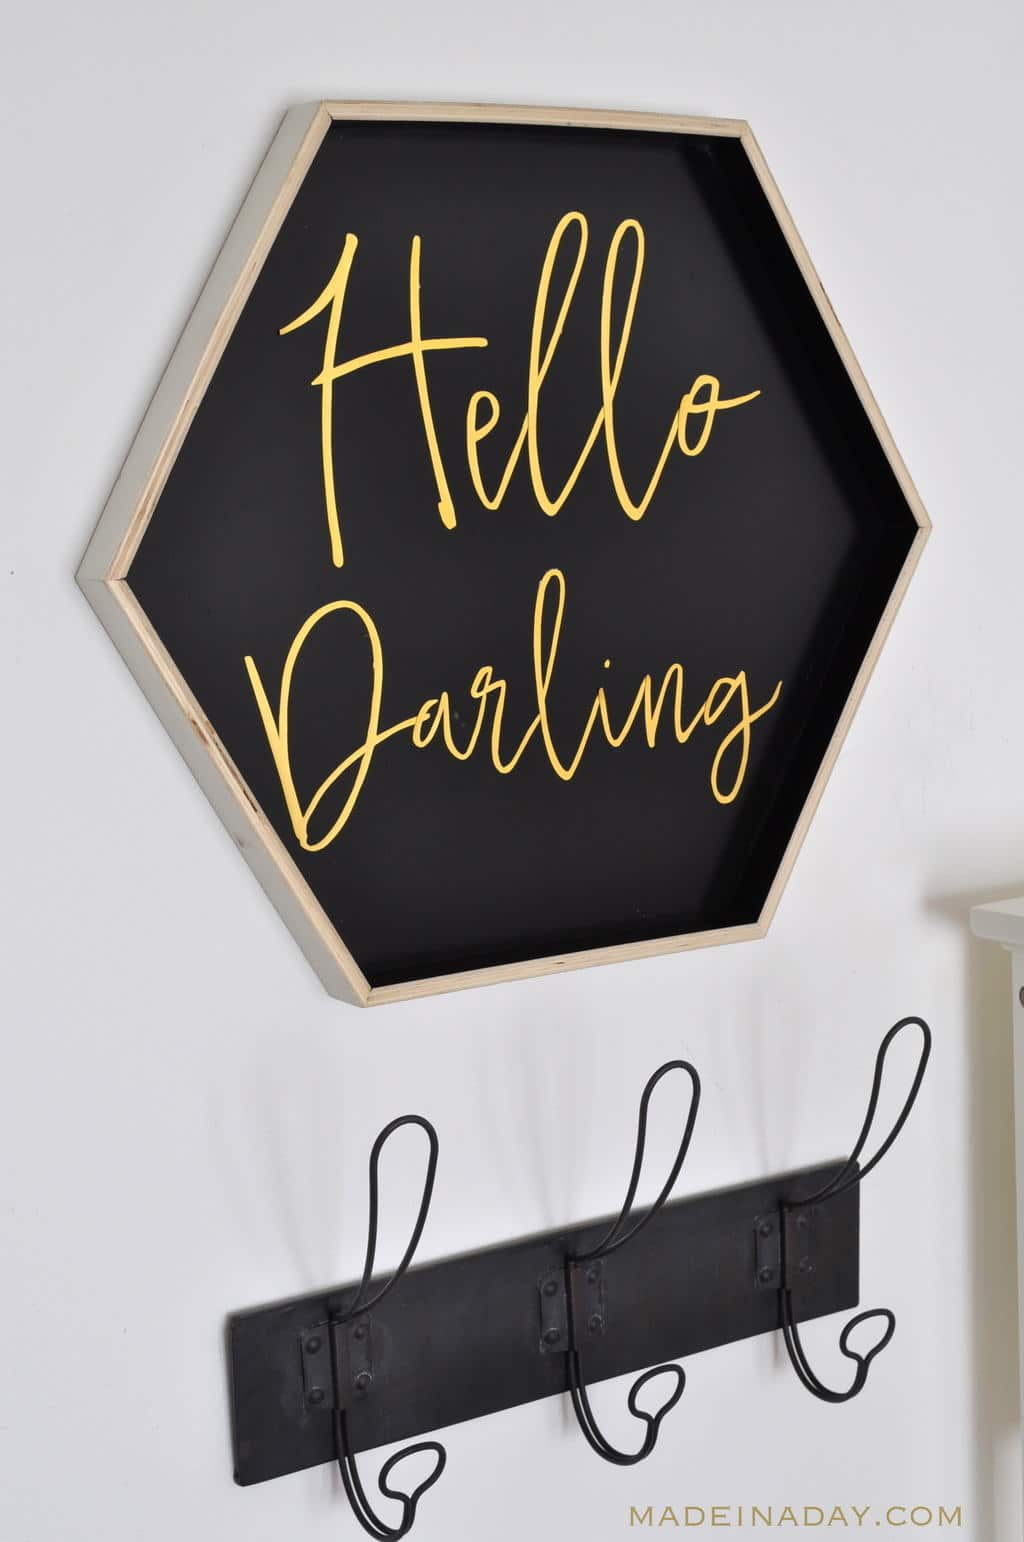 Hello Darling Sign FREE Printable, DIY sign from a tray with gold lettering #printable #sign #wallart #gold